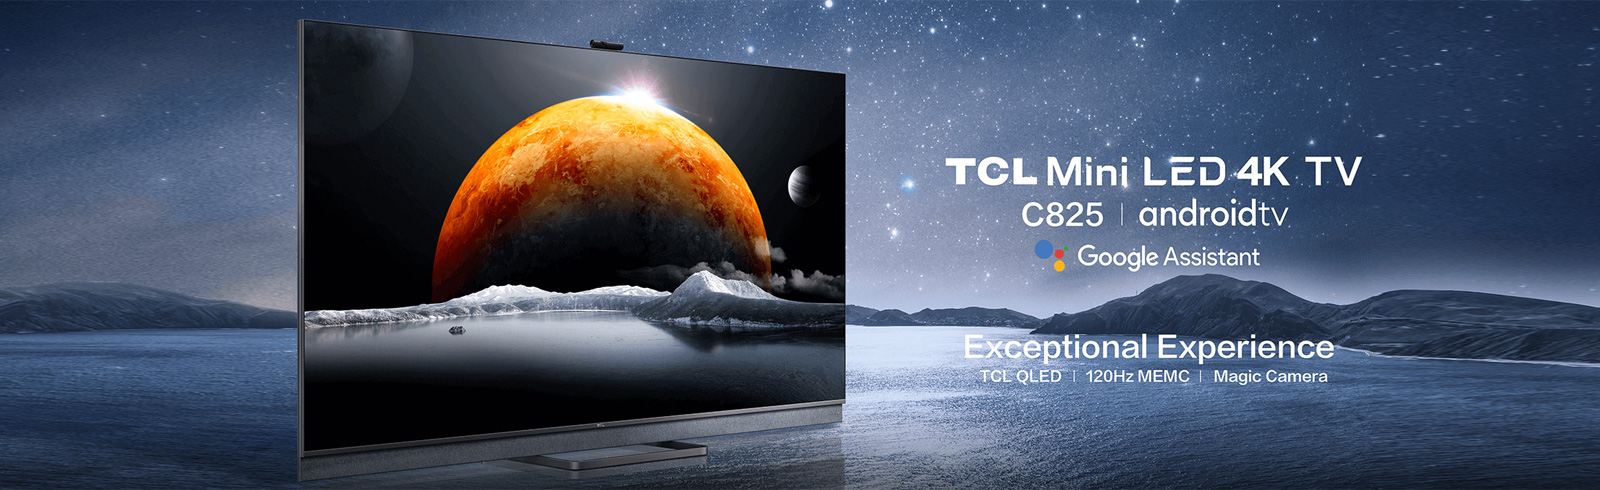 2021 TCL C825 Mini LED TVs - specifications and features